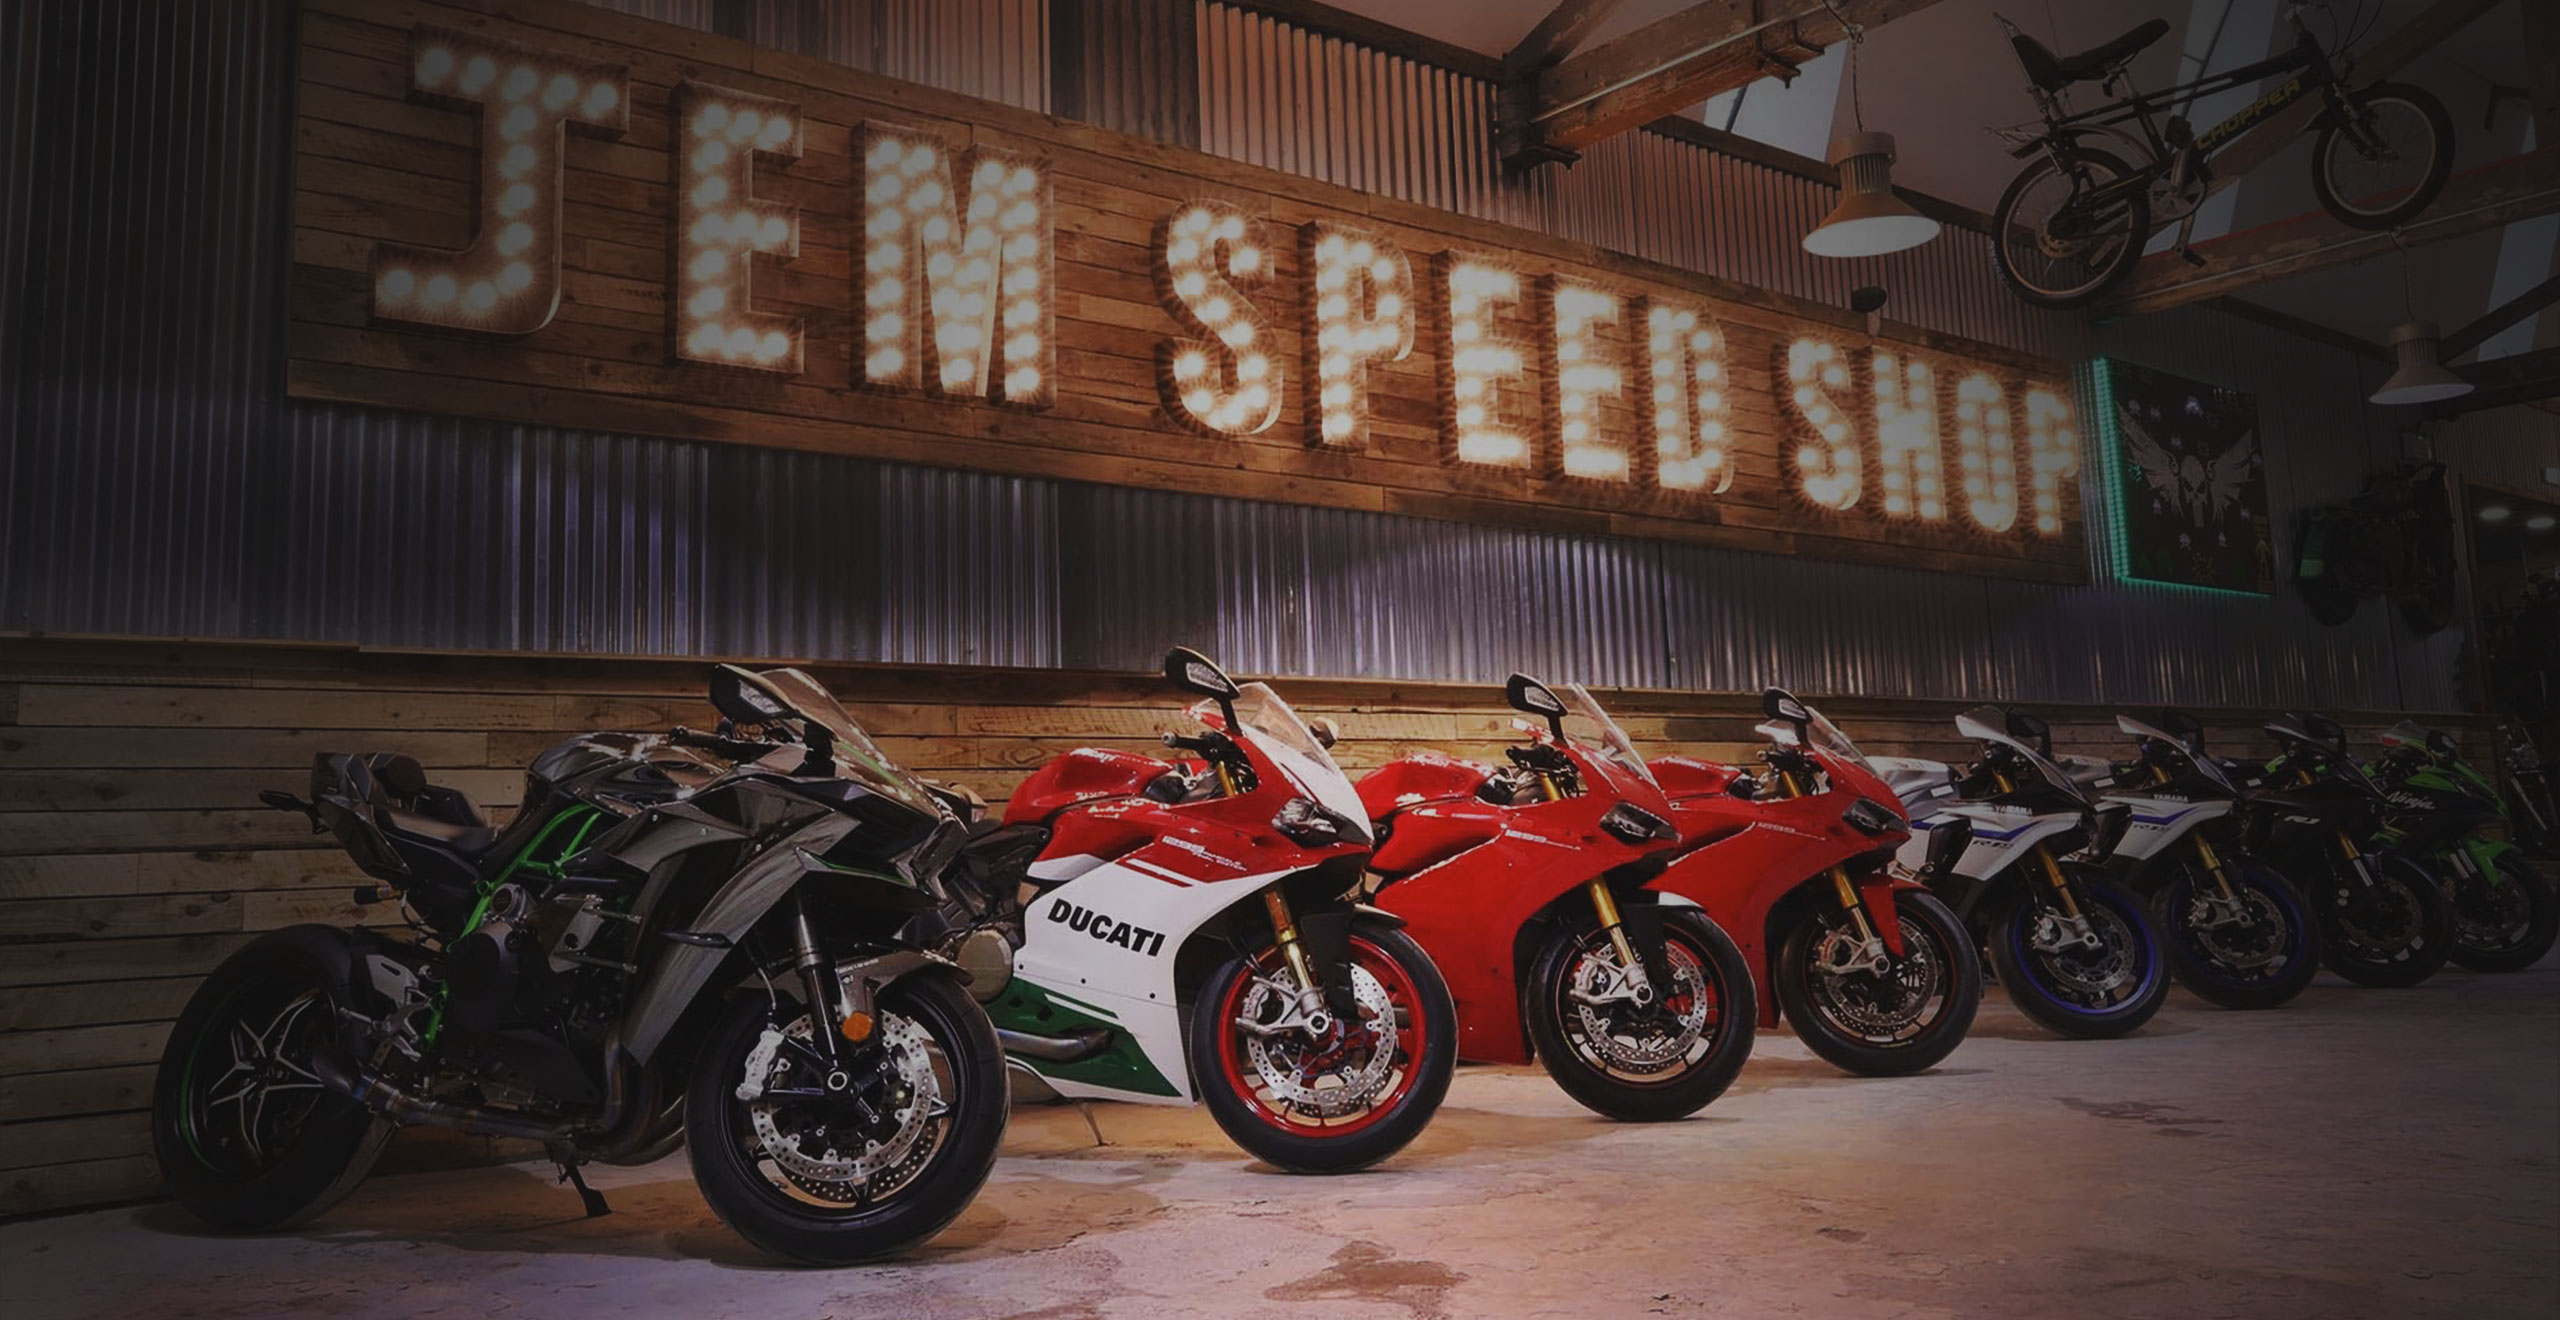 Welcome to Jem Speed Shop